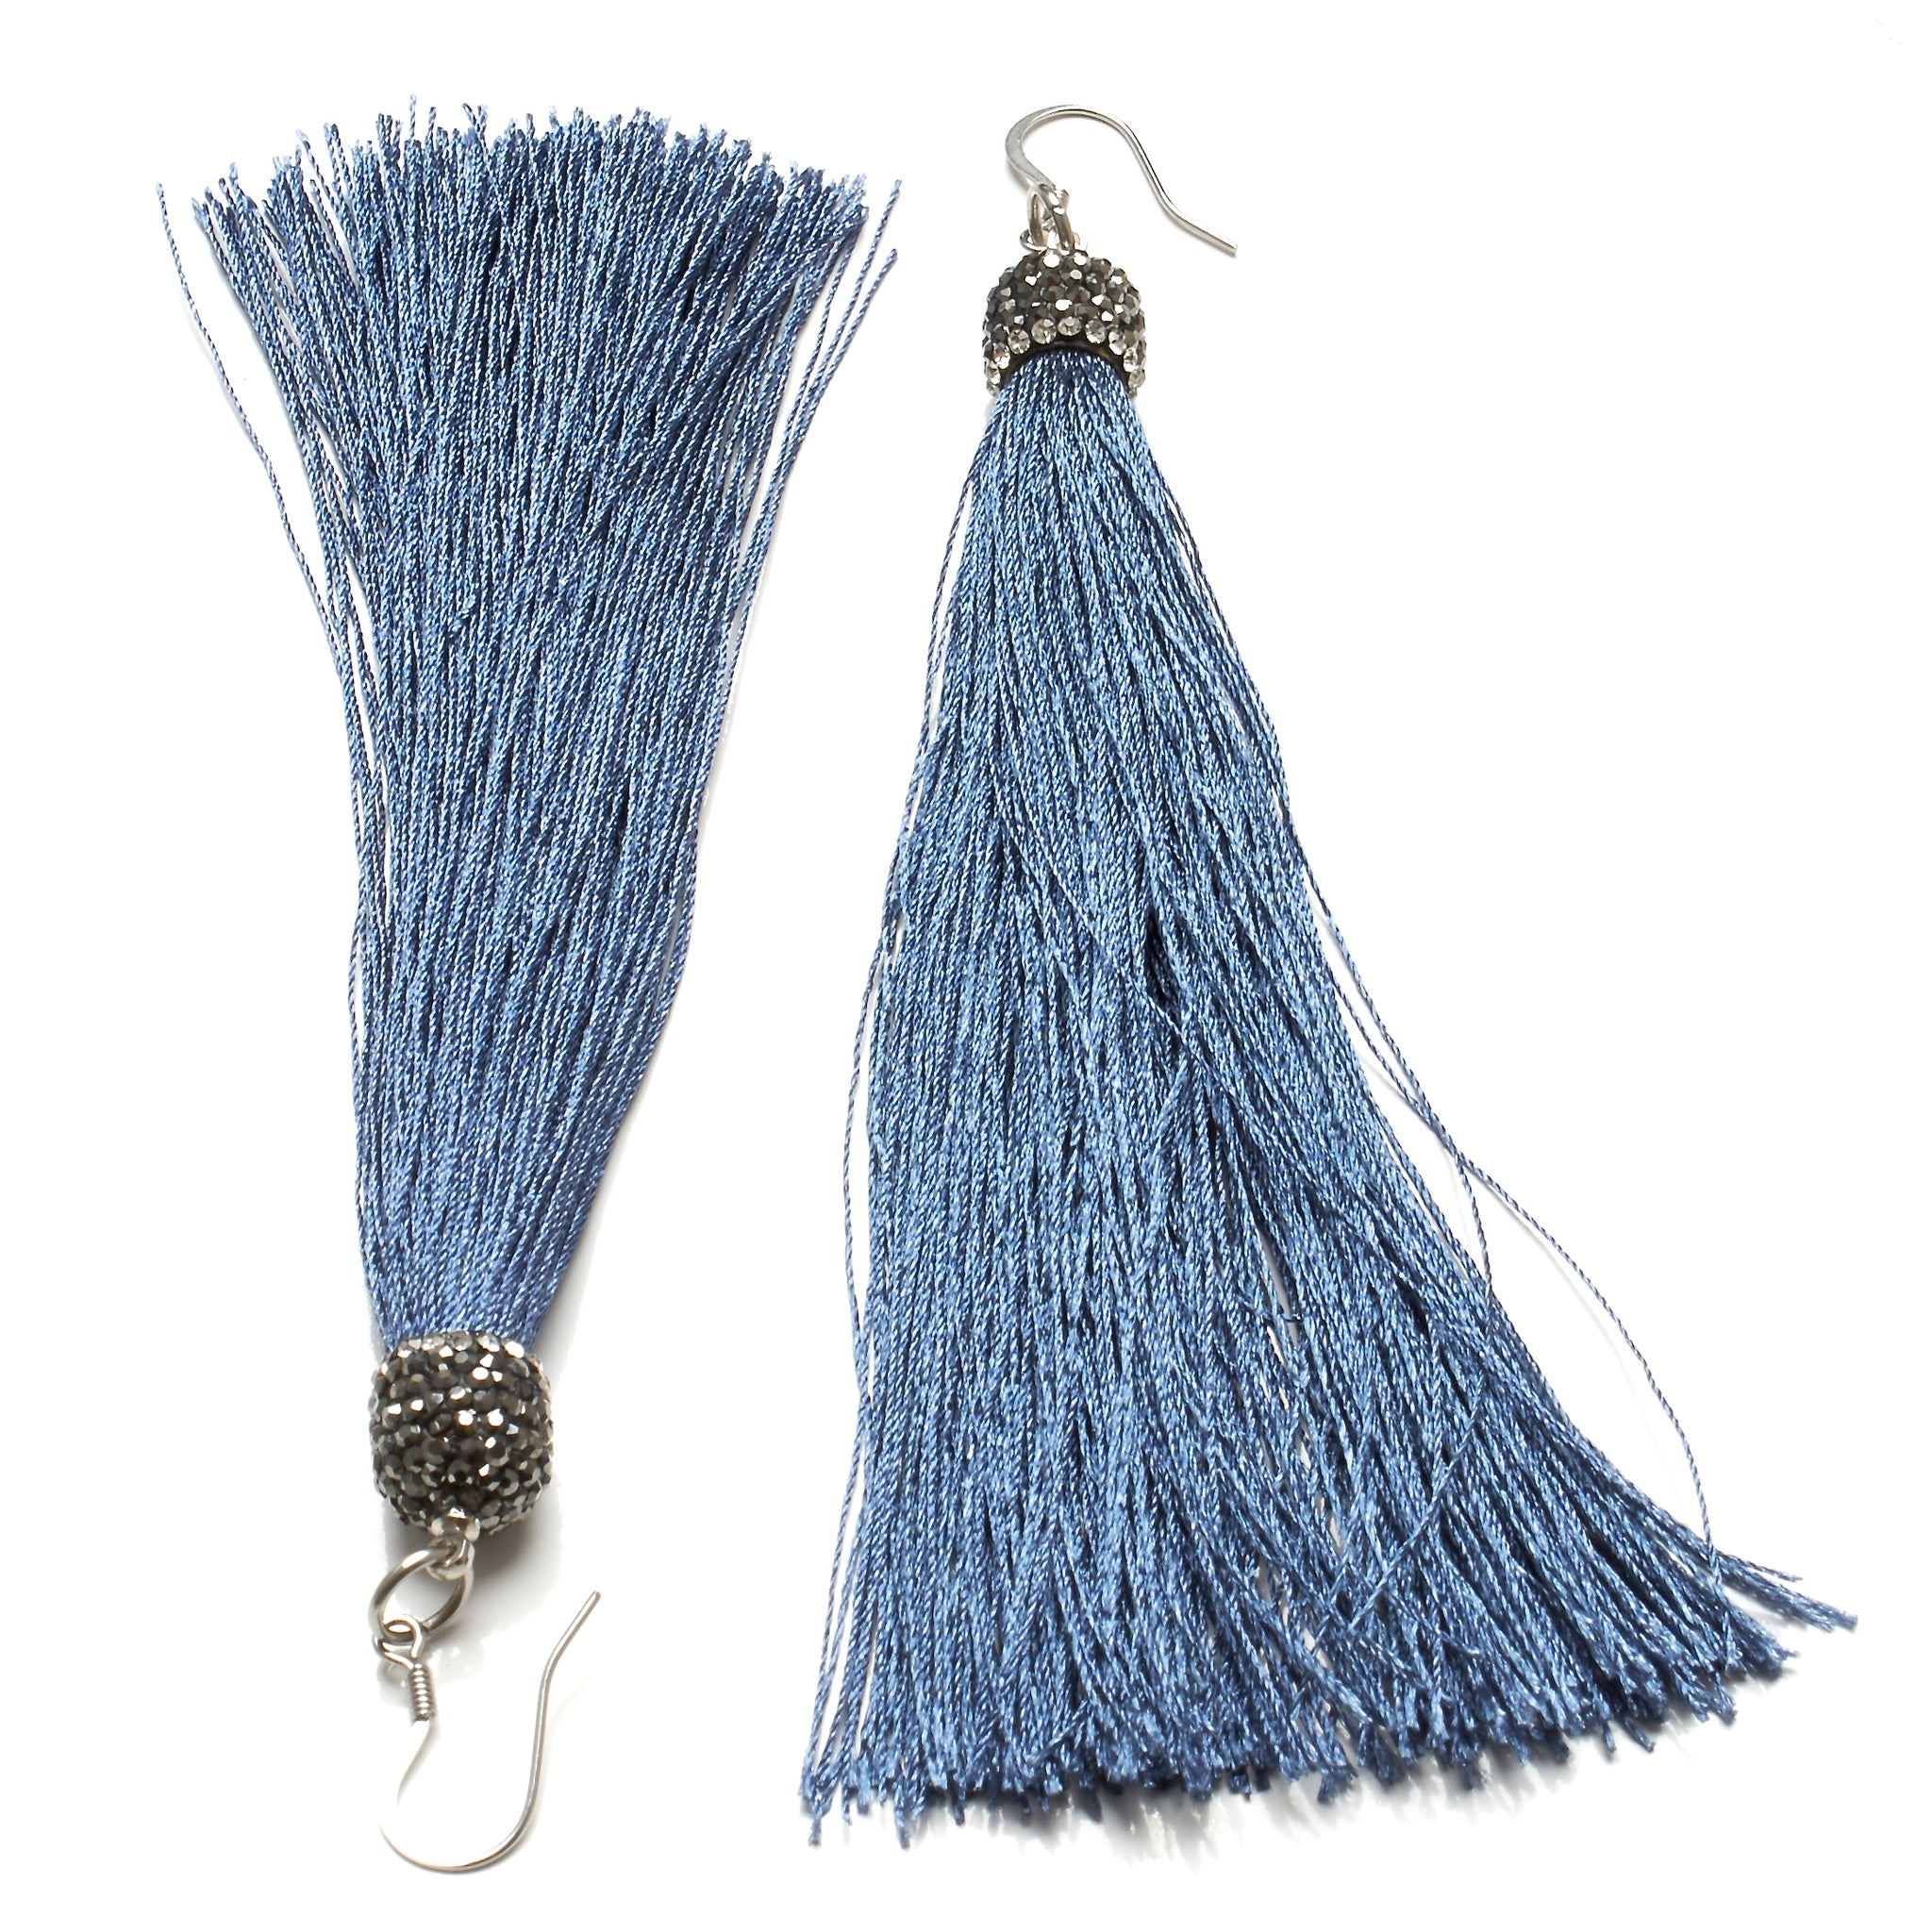 SILK TASSEL AND PAVE RHINESTONES EARRINGS by nyet jewelry